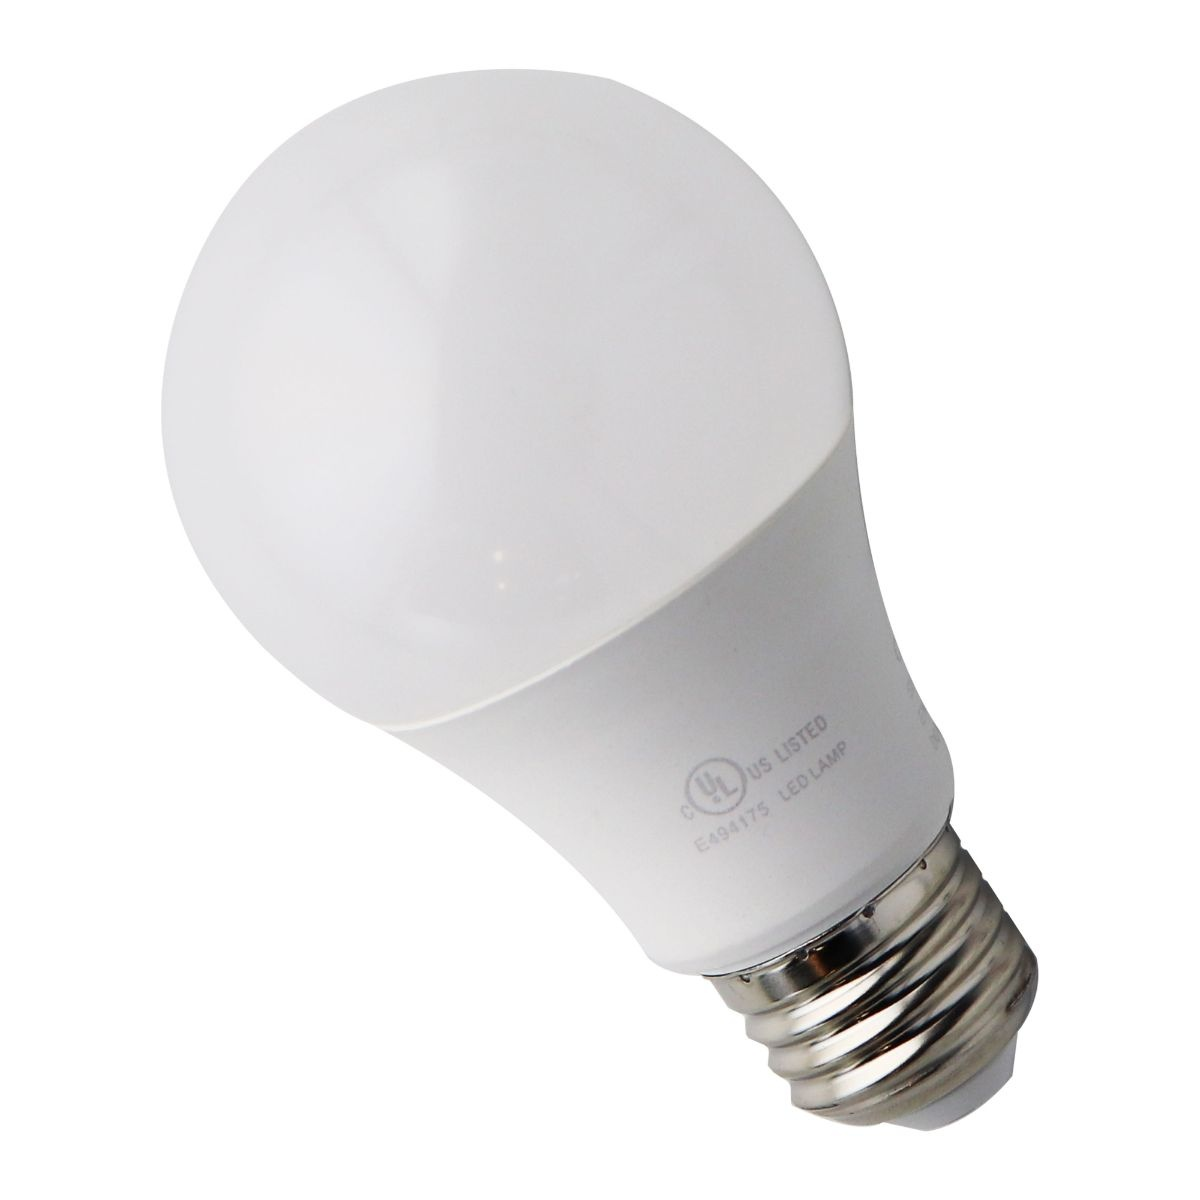 Energy Saving LED Light Bulbs 120v 60w/8w A19 Medium Base - Warm White